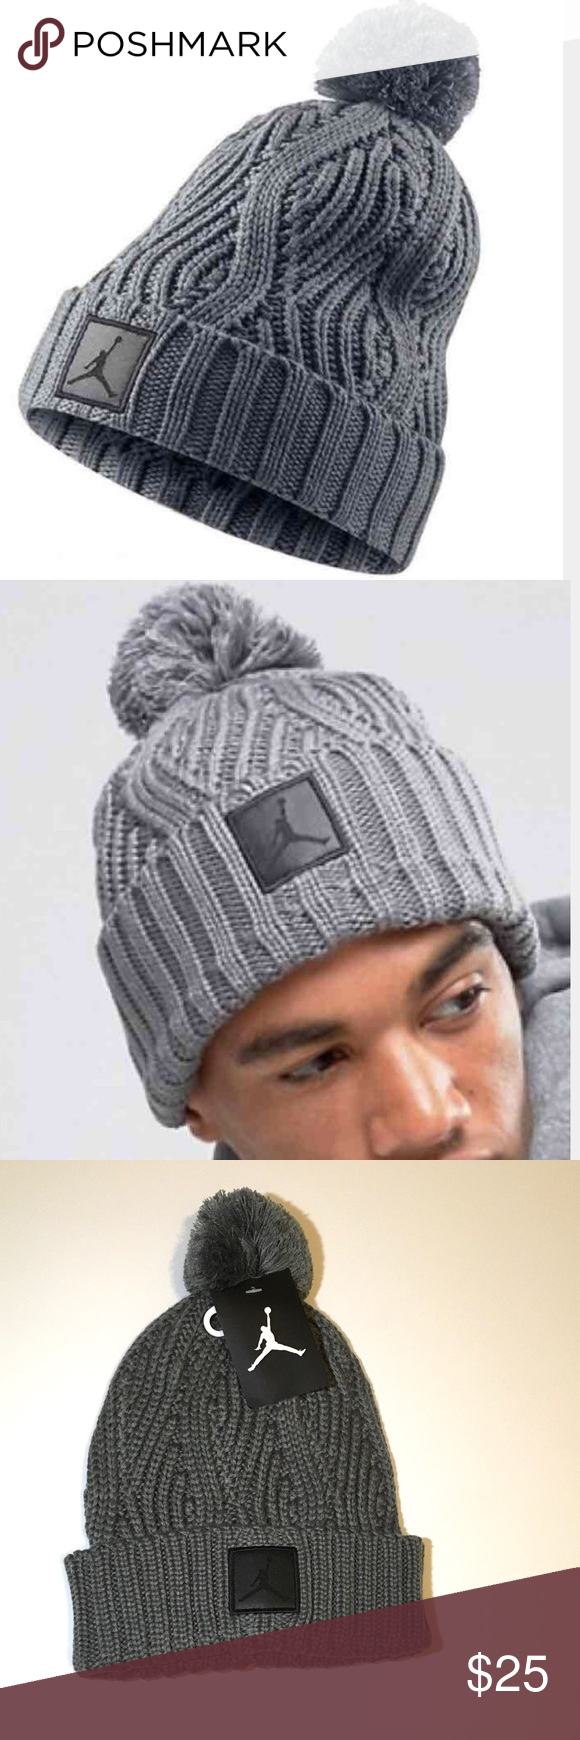 New Nike Air Jordan Jumpman beanie Pom grey hat. New Nike Air Jordan  Jumpman beanie Pom grey hat. Nike Accessories Hats be8c95c51e4